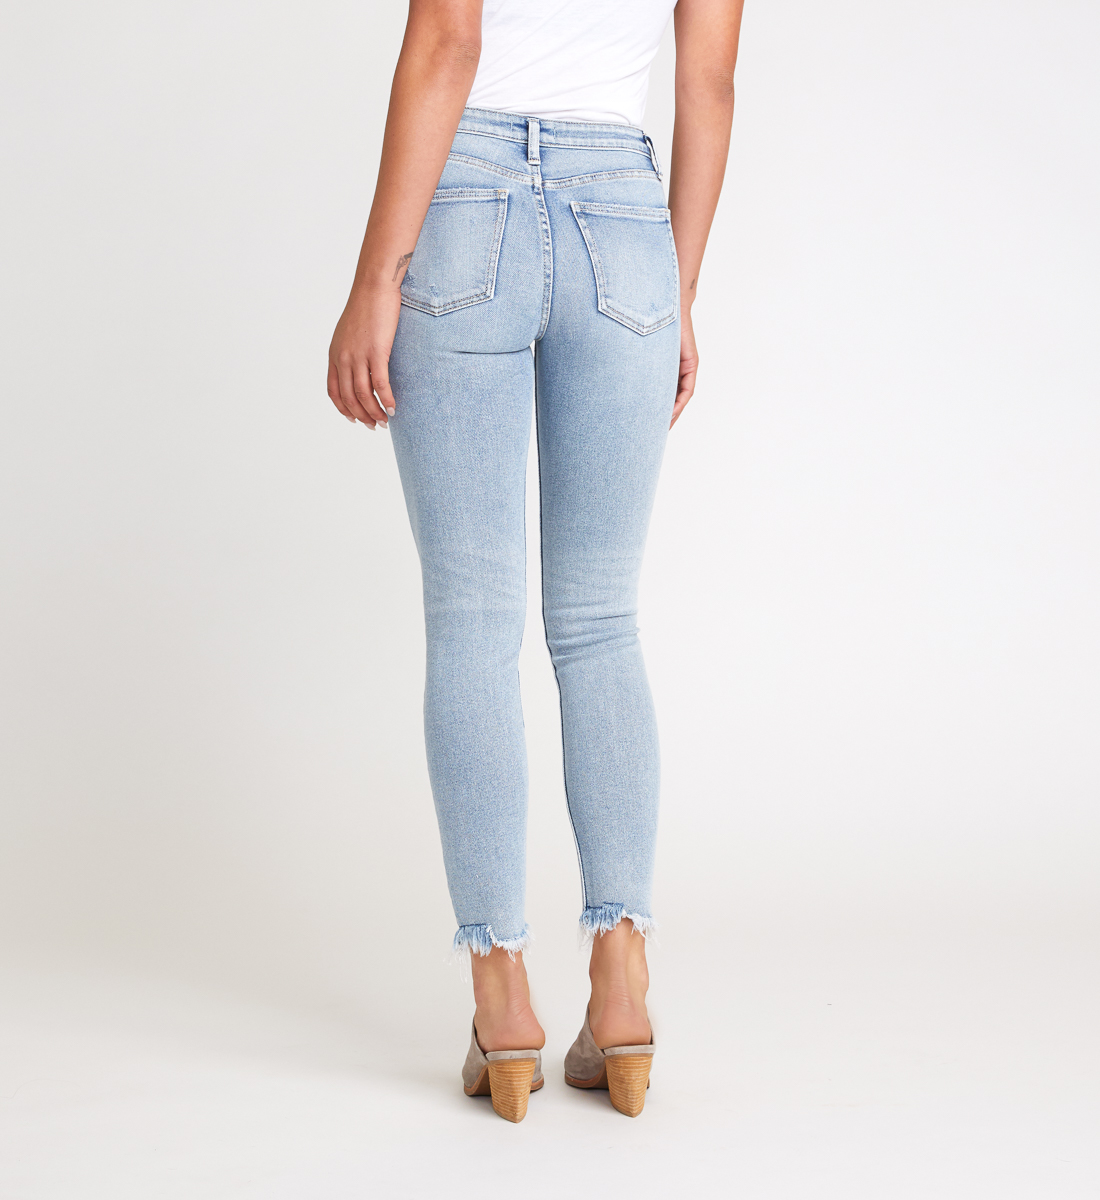 Most Wanted Mid Rise Skinny Jeans Back